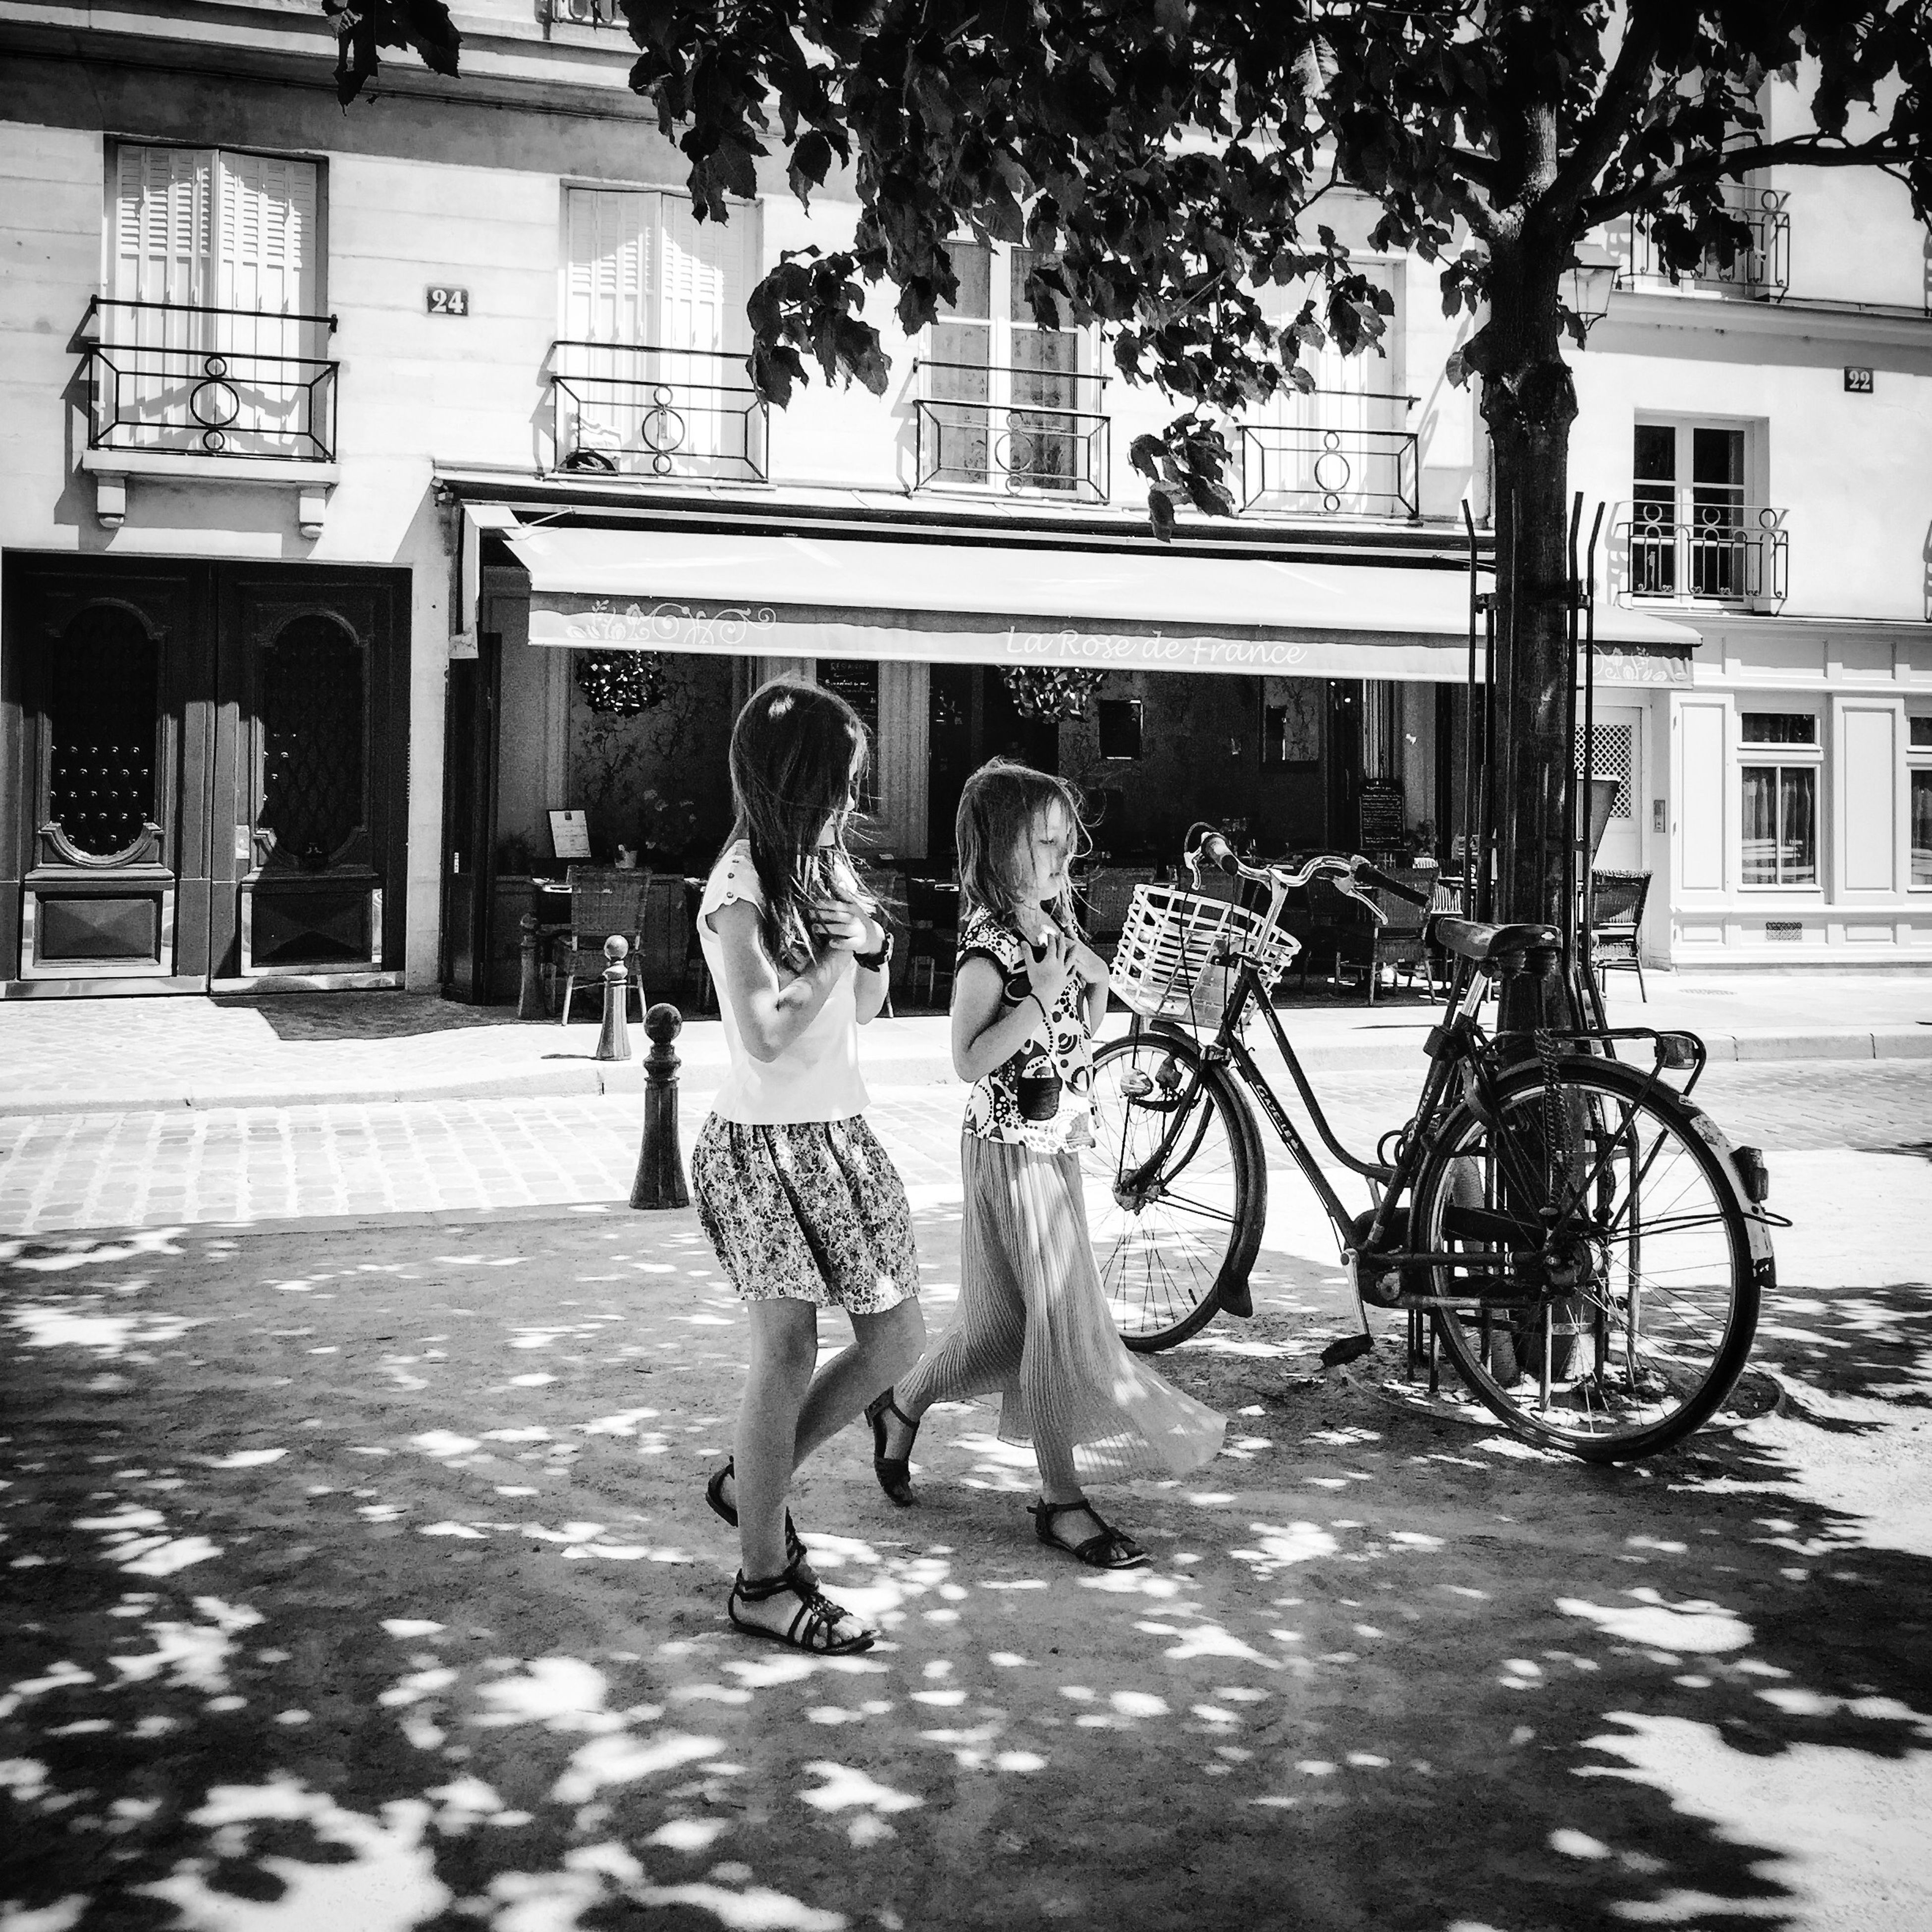 A friend reminded me that I have not posted something in black and white for a while. Bon dimanche! EyeEm Best Shots EyeEm Best Shots - People + Portrait Paris Summertime Streetphoto_bw EyeEm Bnw Bnw_life BNW PARIS EE_Daily: Black And White